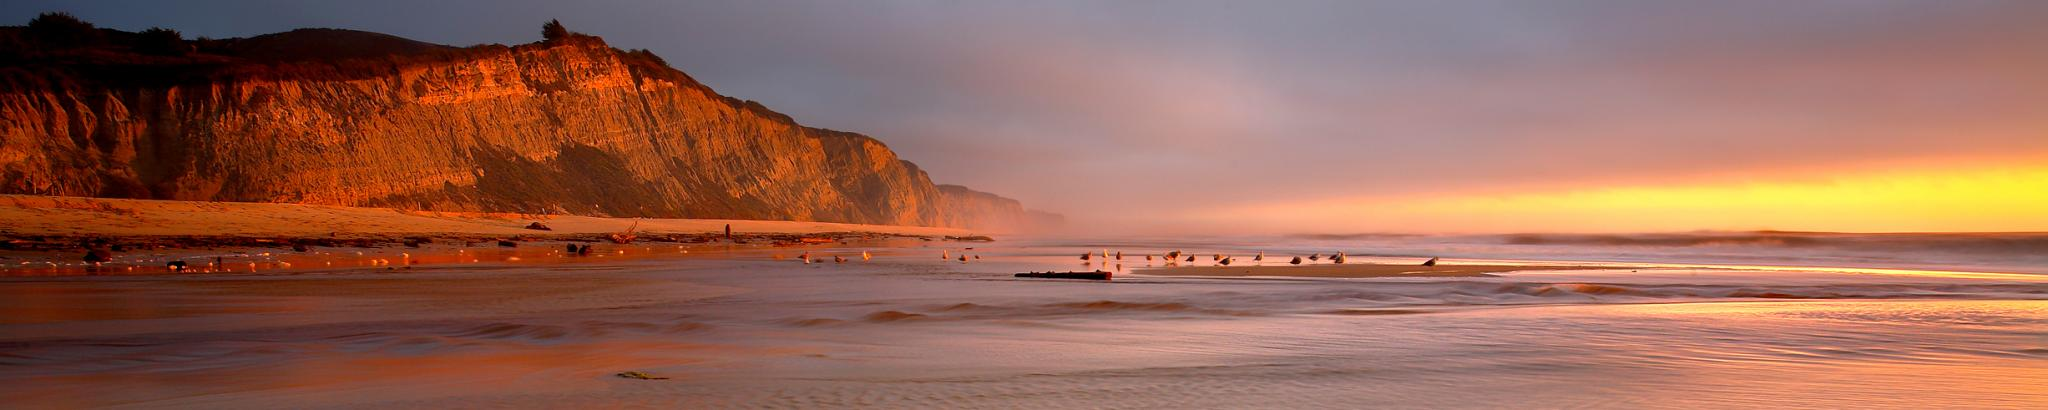 Warmly illuminated cliffs, birds, and rippling water at a beach at sunset